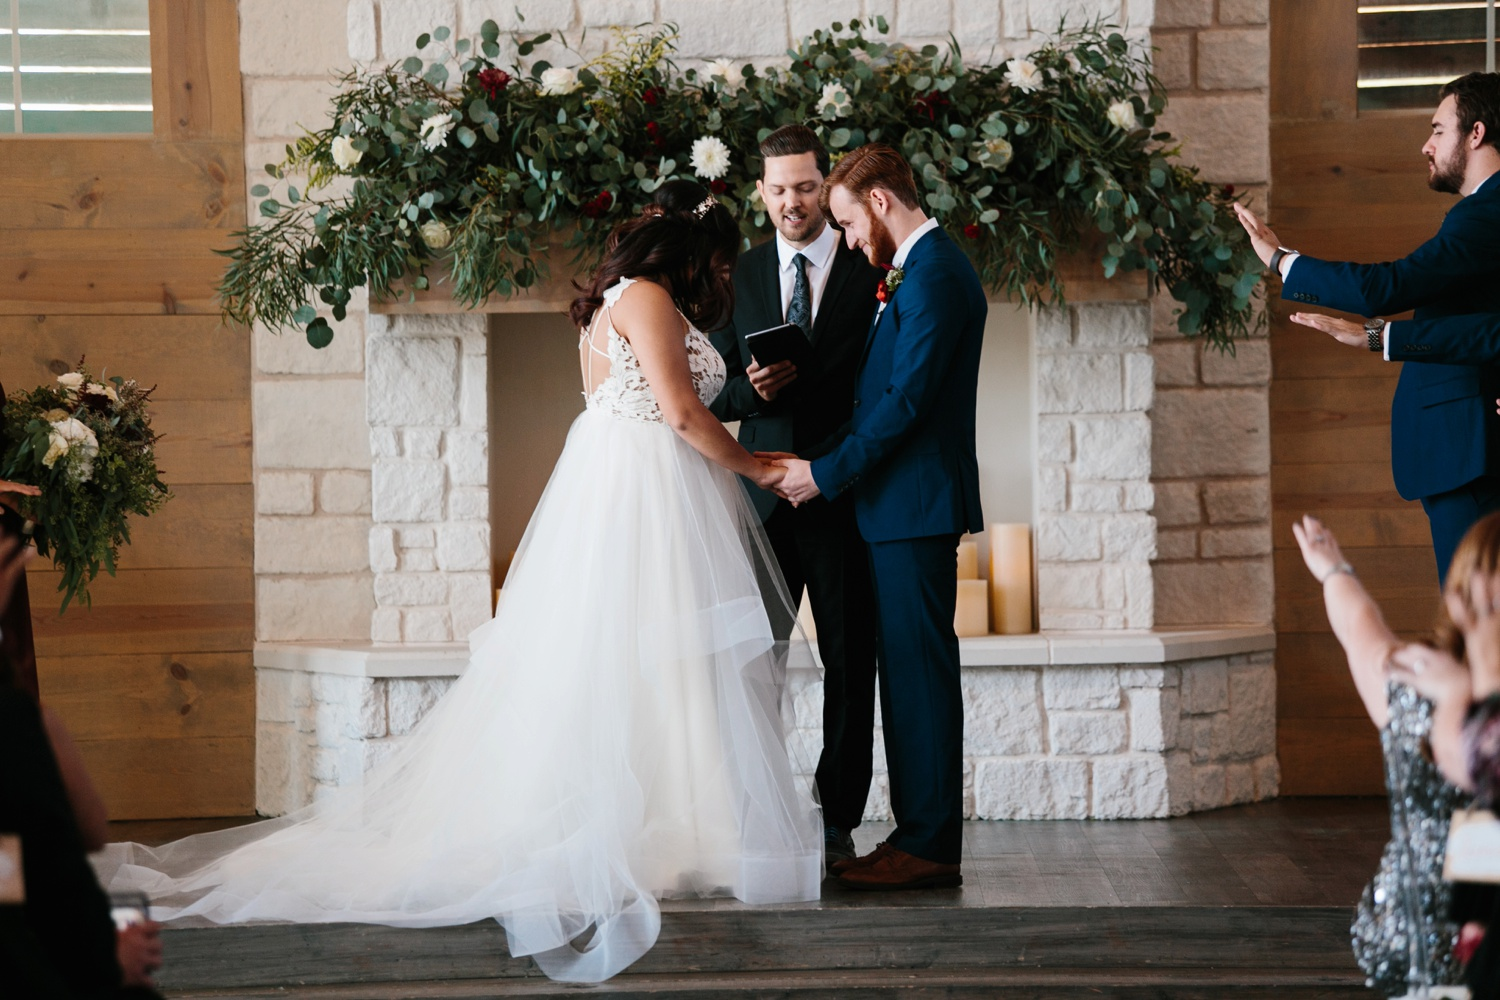 Grant + Lysette | a vibrant, deep burgundy and navy, and mixed metals wedding at Hidden Pines Chapel by North Texas Wedding Photographer Rachel Meagan Photography 105